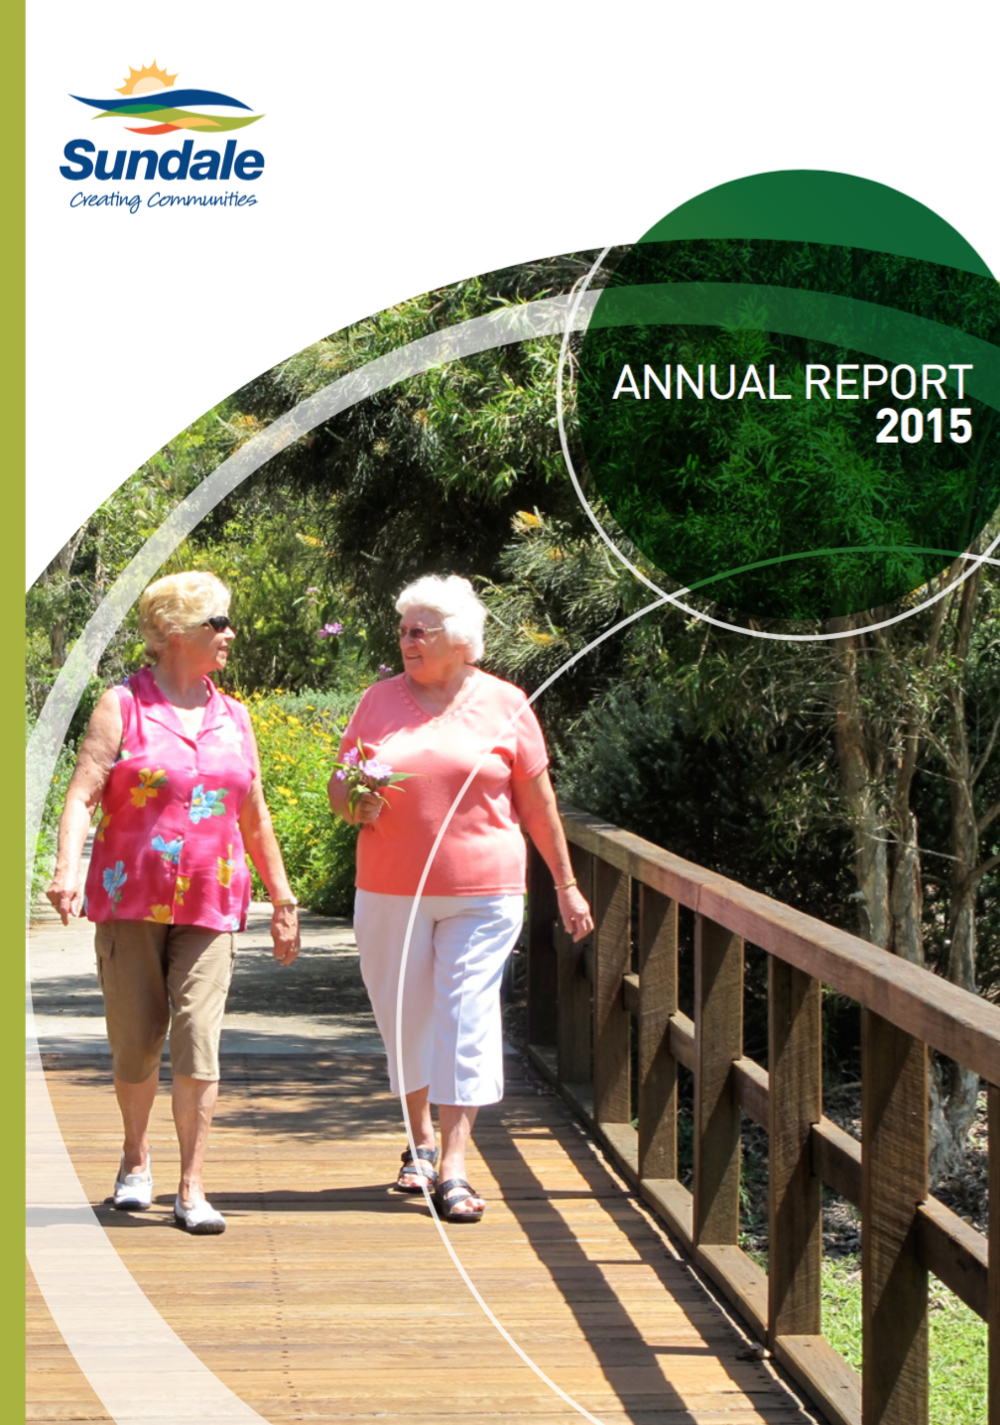 Sundale Annual Report 2015.png